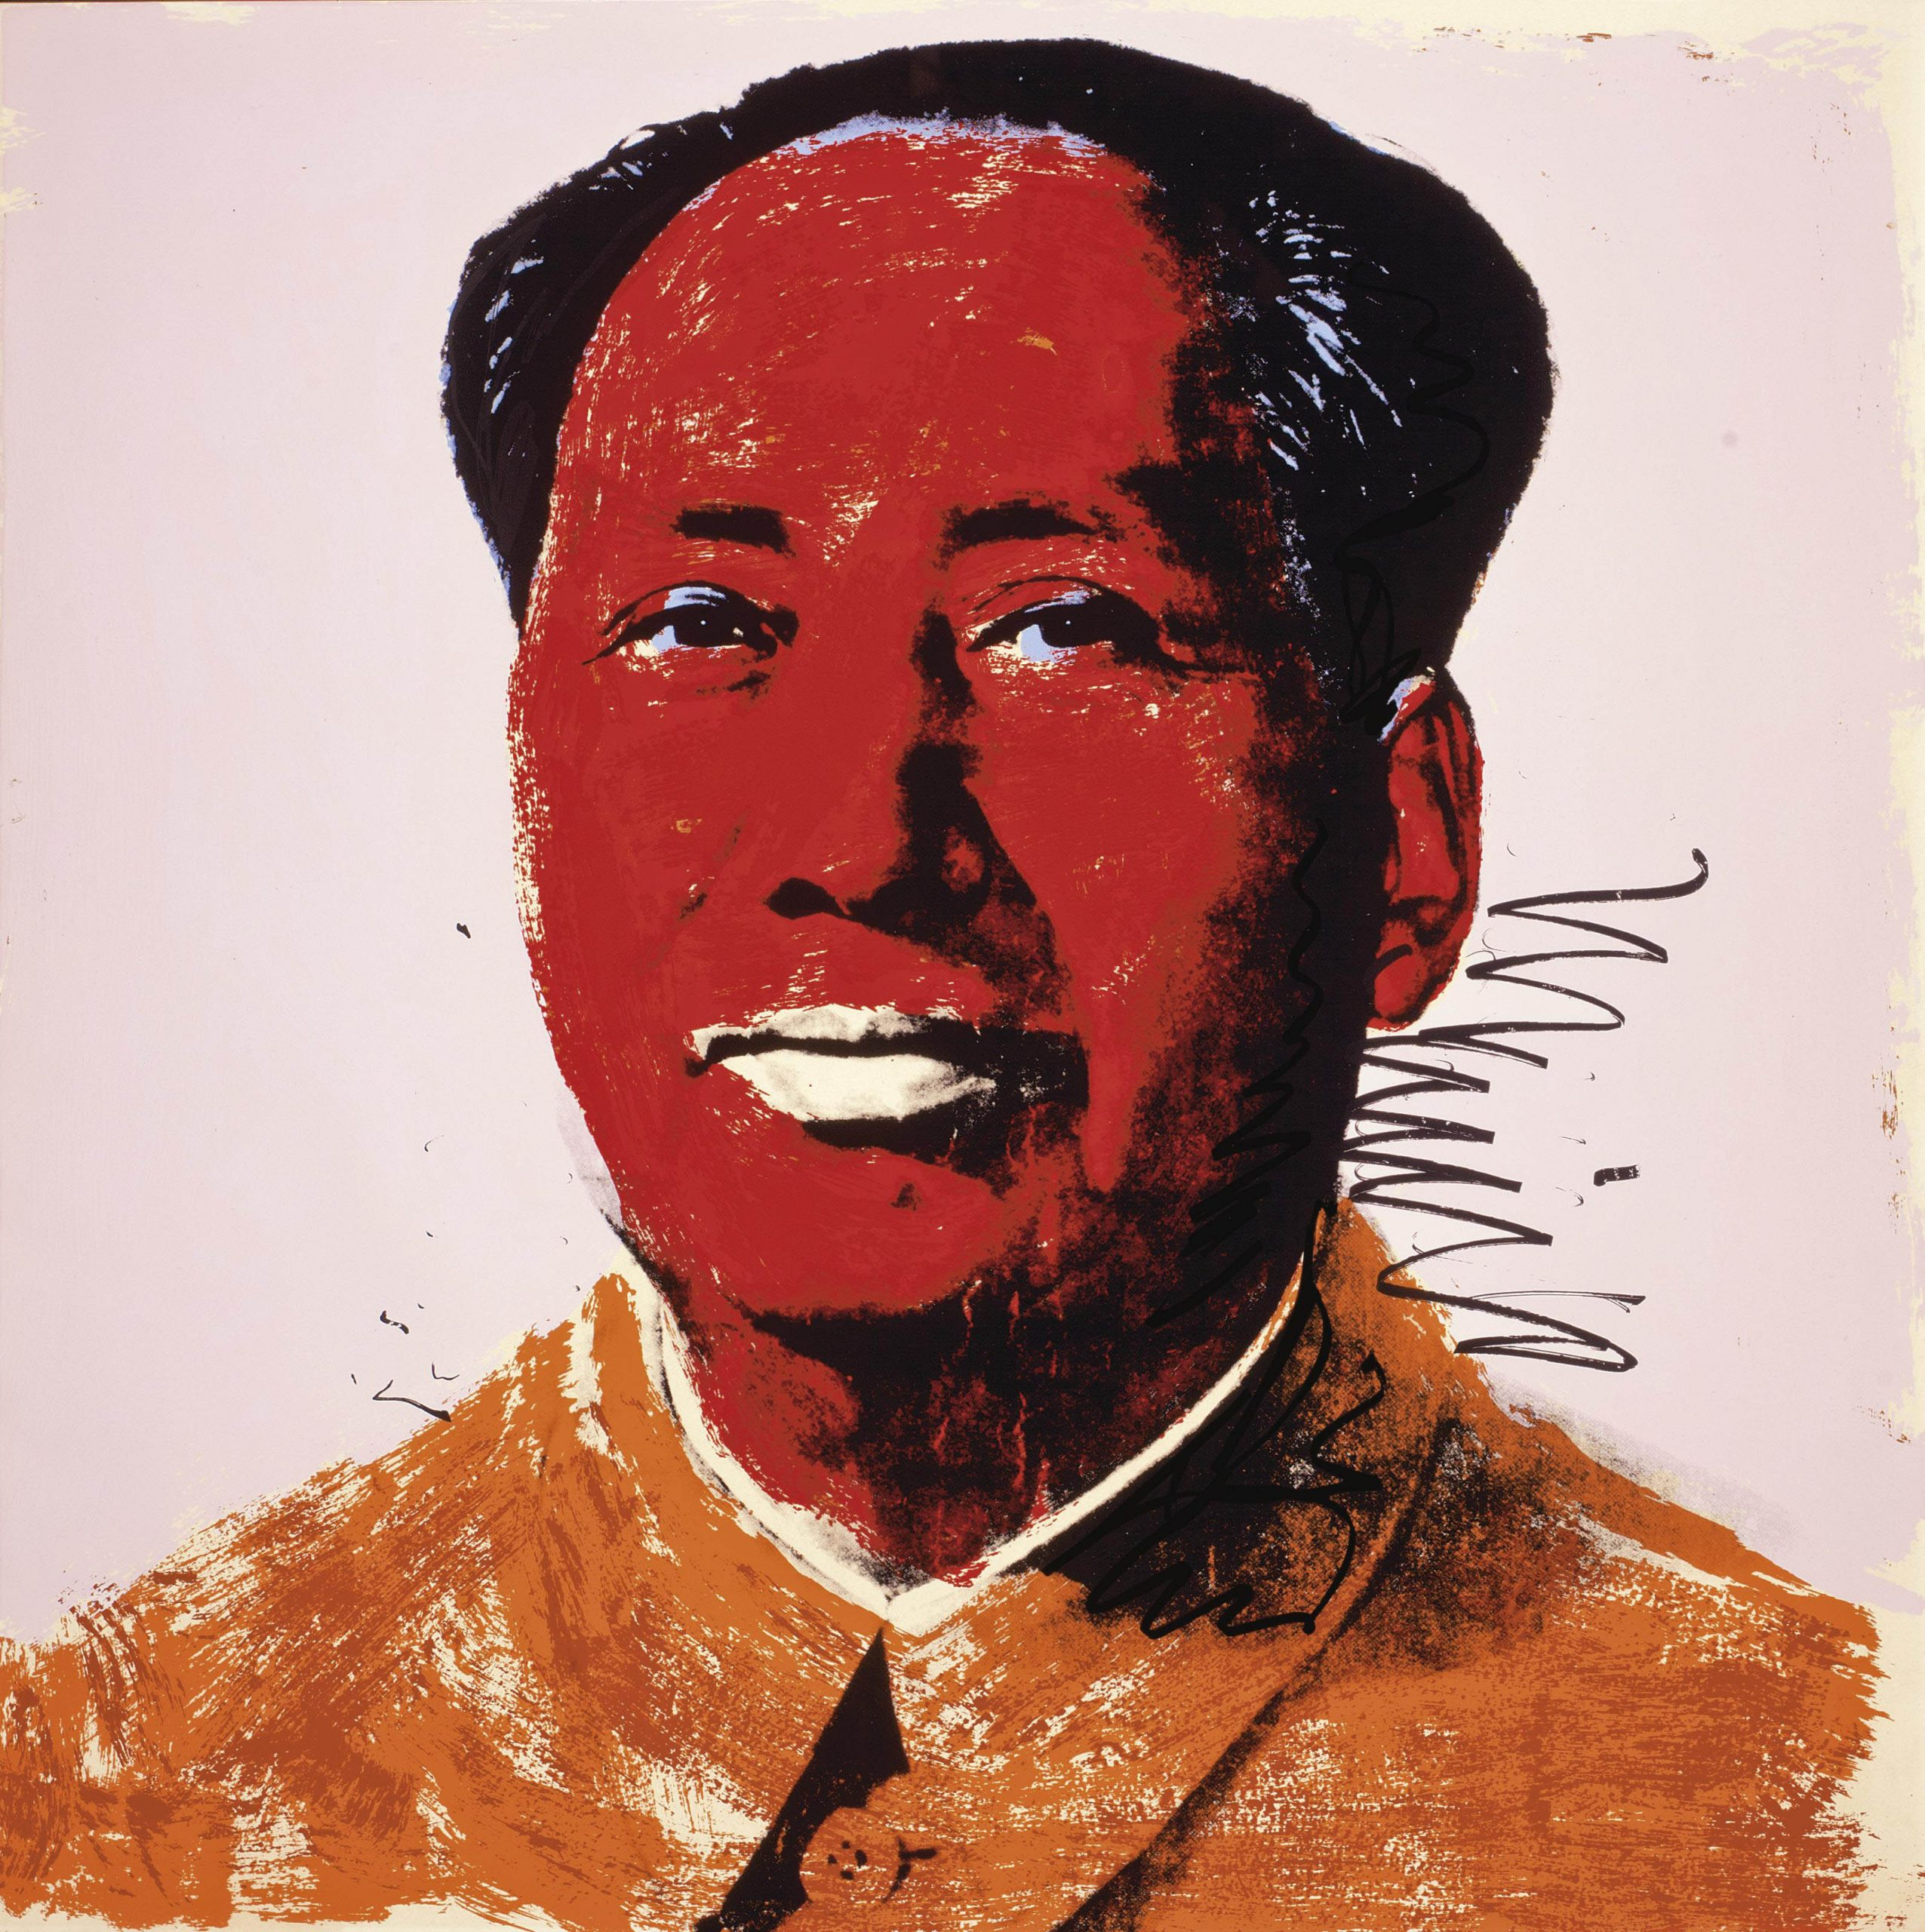 Georgia Runoff Candidate Kelly Loeffler Allegedly Owns a $56,000 Warhol Portrait of Mao, and a Fellow Republican Thinks It's Weird